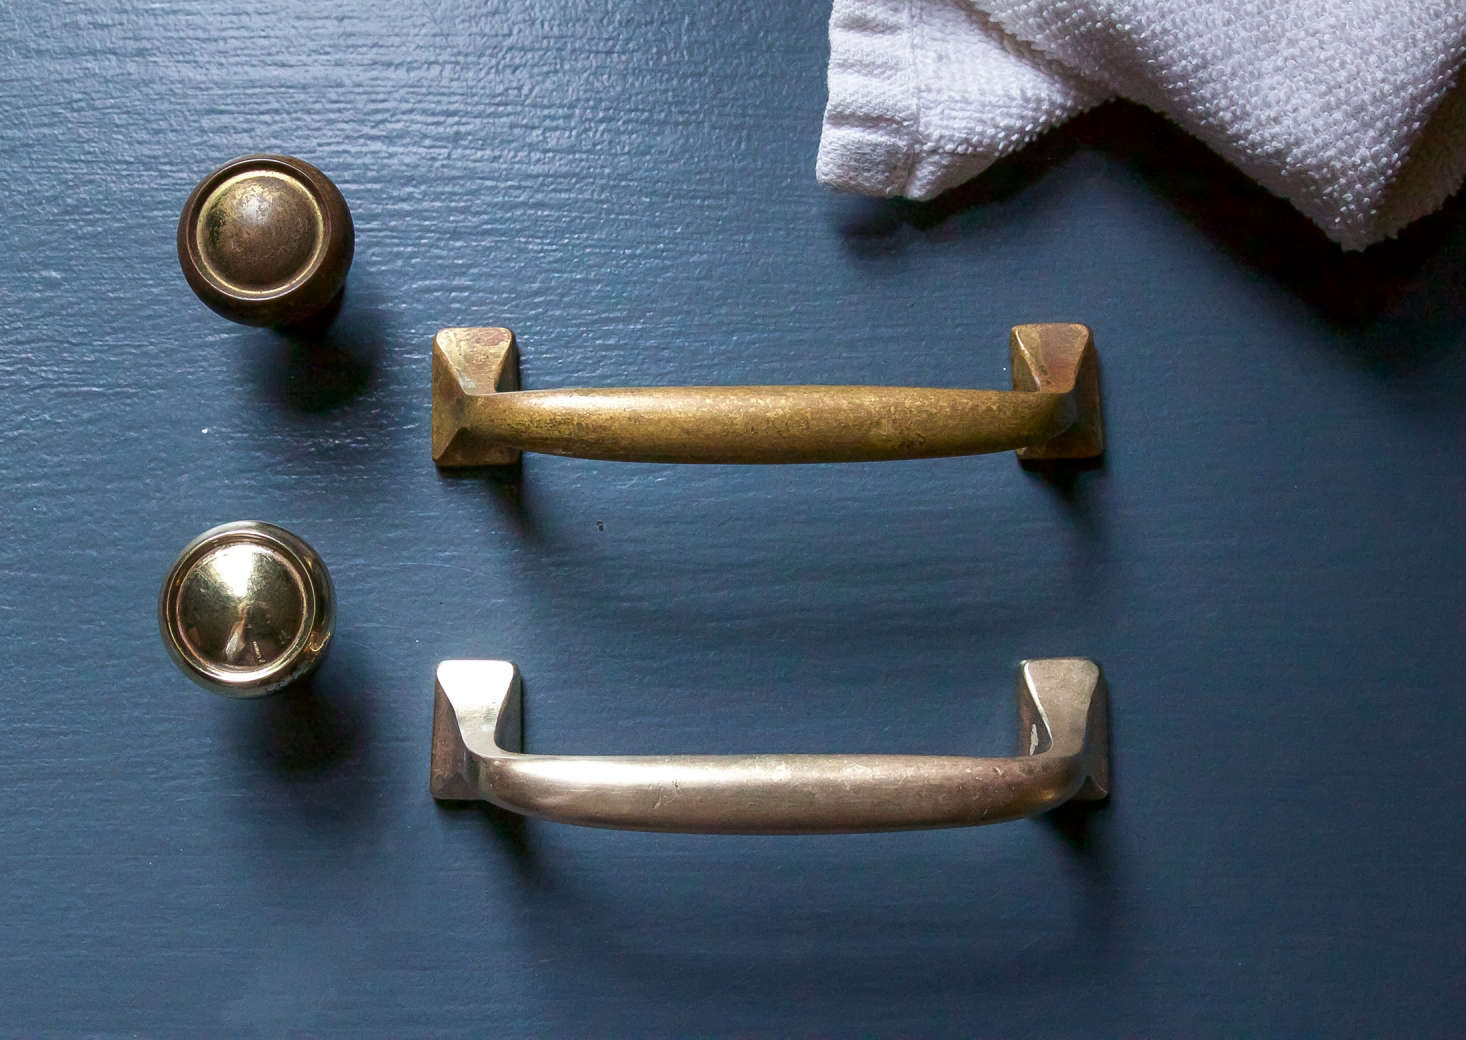 My brass hardware before and after. Note that the polished vintage handle has a soft, pleasingly matte finish, unlike the newer brasspiece.